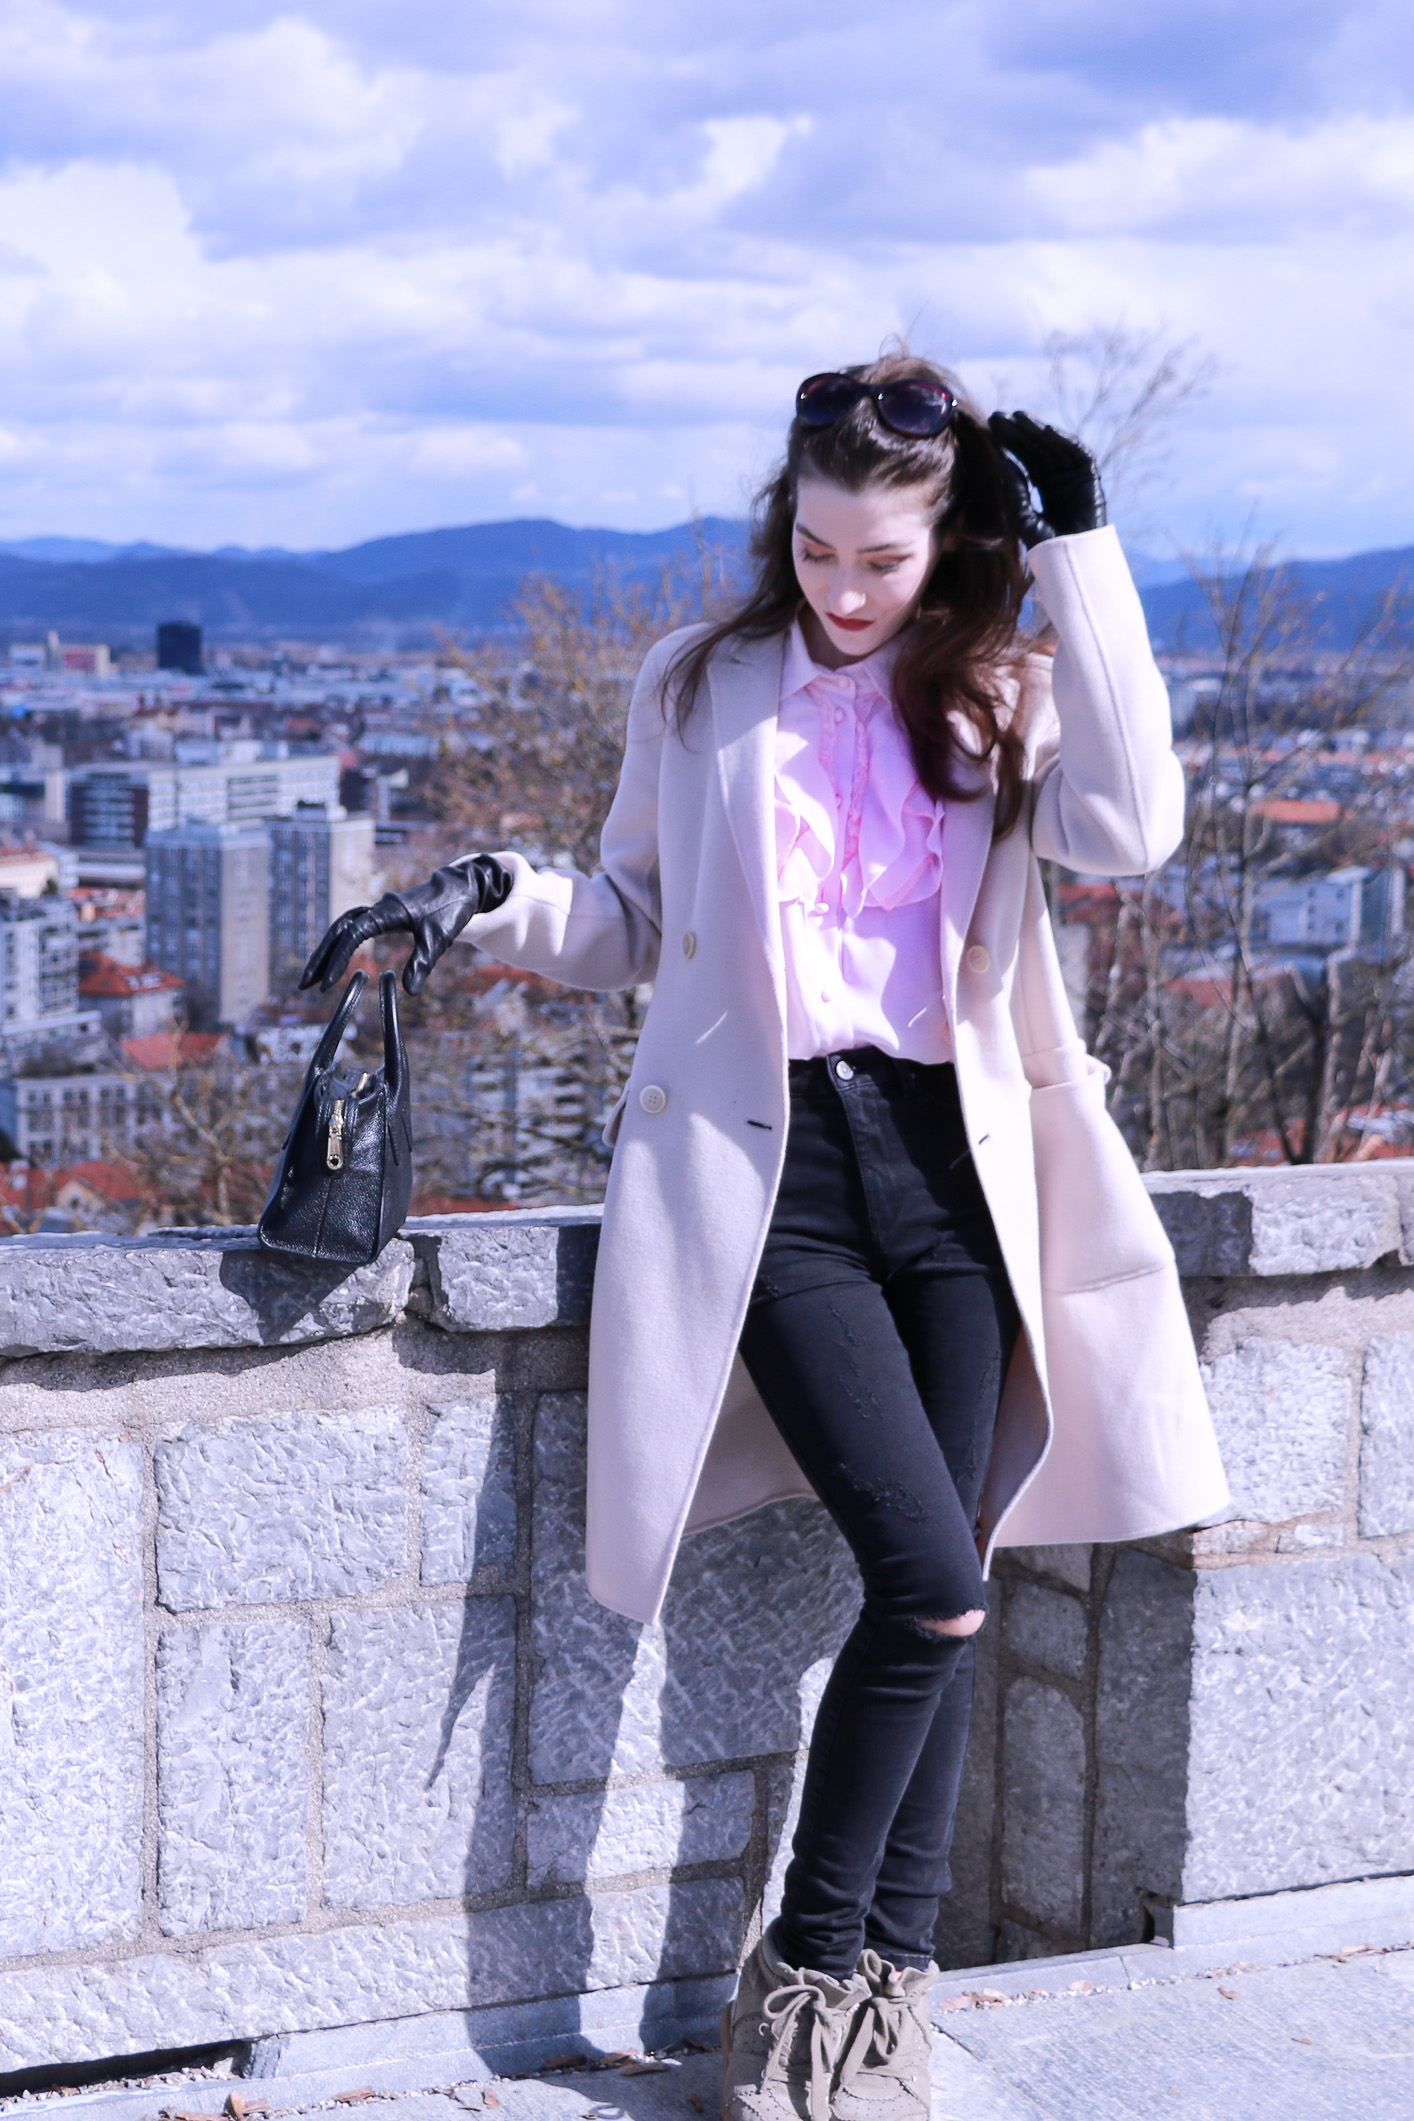 Fashion blogger Veronika Lipar of Brunette From Wall Street on how to wear pink ruffled sheer blouse and black ripped jeans this spring